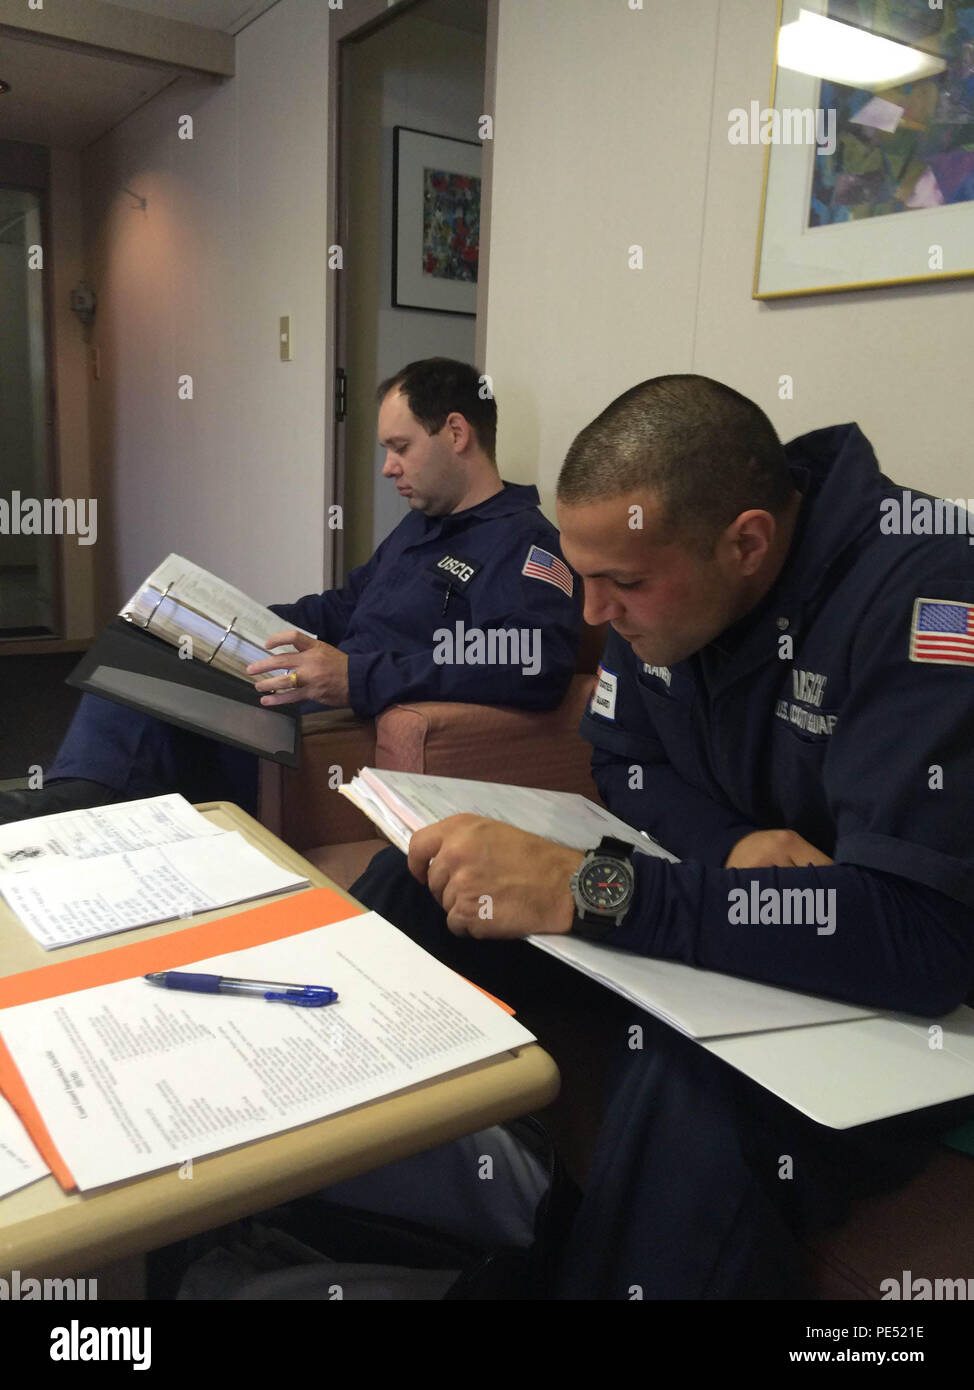 Lt. Peter Raneri and Lt. Matt Arnold, port state control officers at Coast Guard Activities Far East, examine documentation aboard the 656-foot U.S. flagged vehicle carrier ship, Green Lake, at Yokosuka Shinko Port wharf in Yokosuka City, Japan, Sept. 29, 2015. Coast Guardsmen conduct inspections to ensure a vessel has a suitable structure, correct documentation, proper working equipment and lifesaving equipment and adequate accommodations. (U.S. Coast Guard photo by Lt. Kenn Yuen/Released) Stock Photo